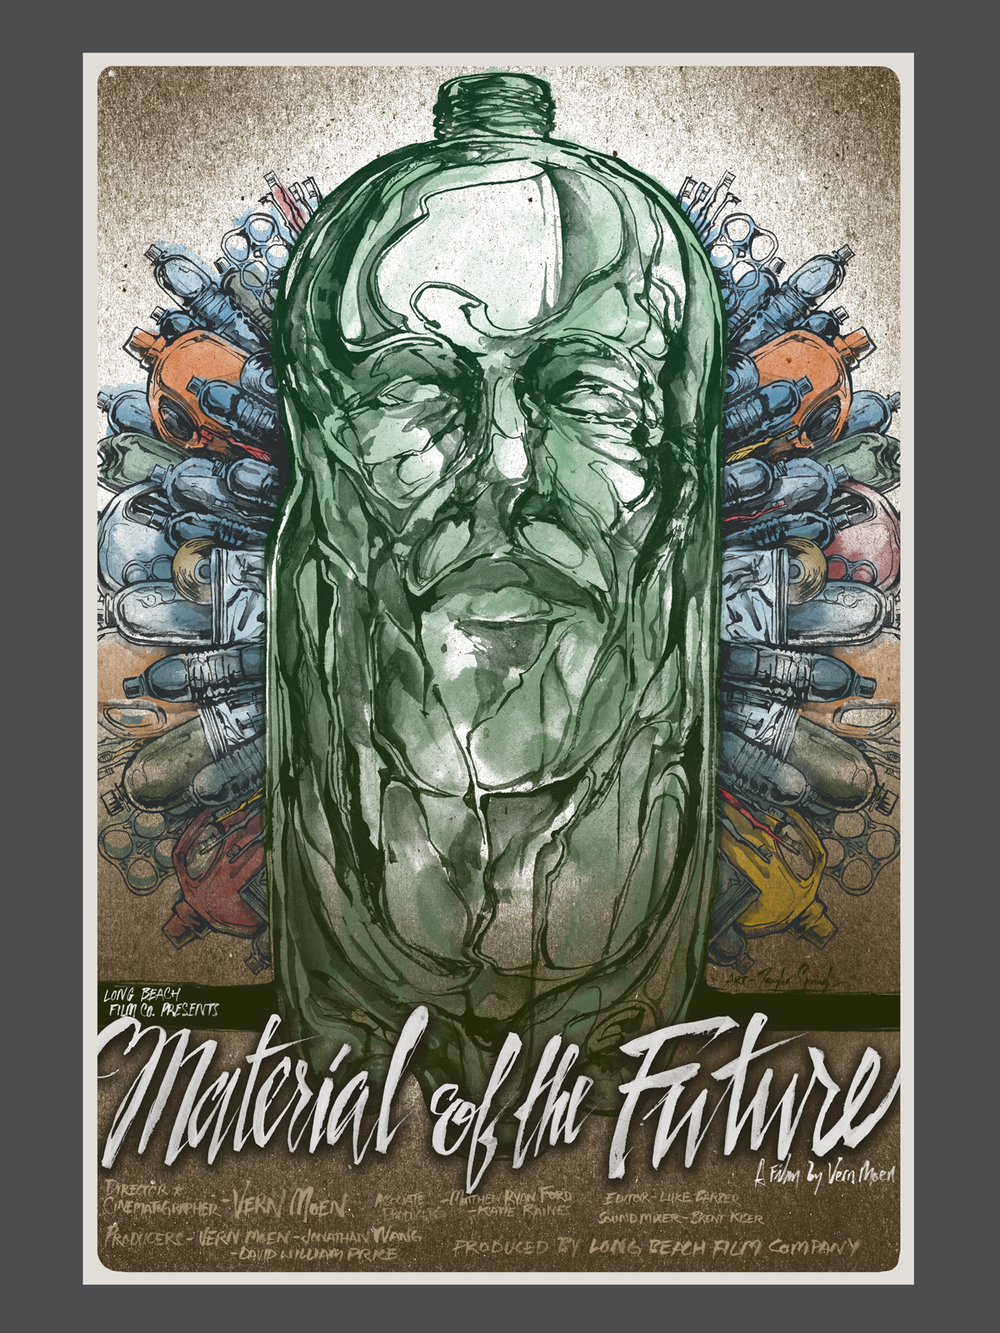 Official movie poster for Material Of The Future. Designed by Taylor Springle.